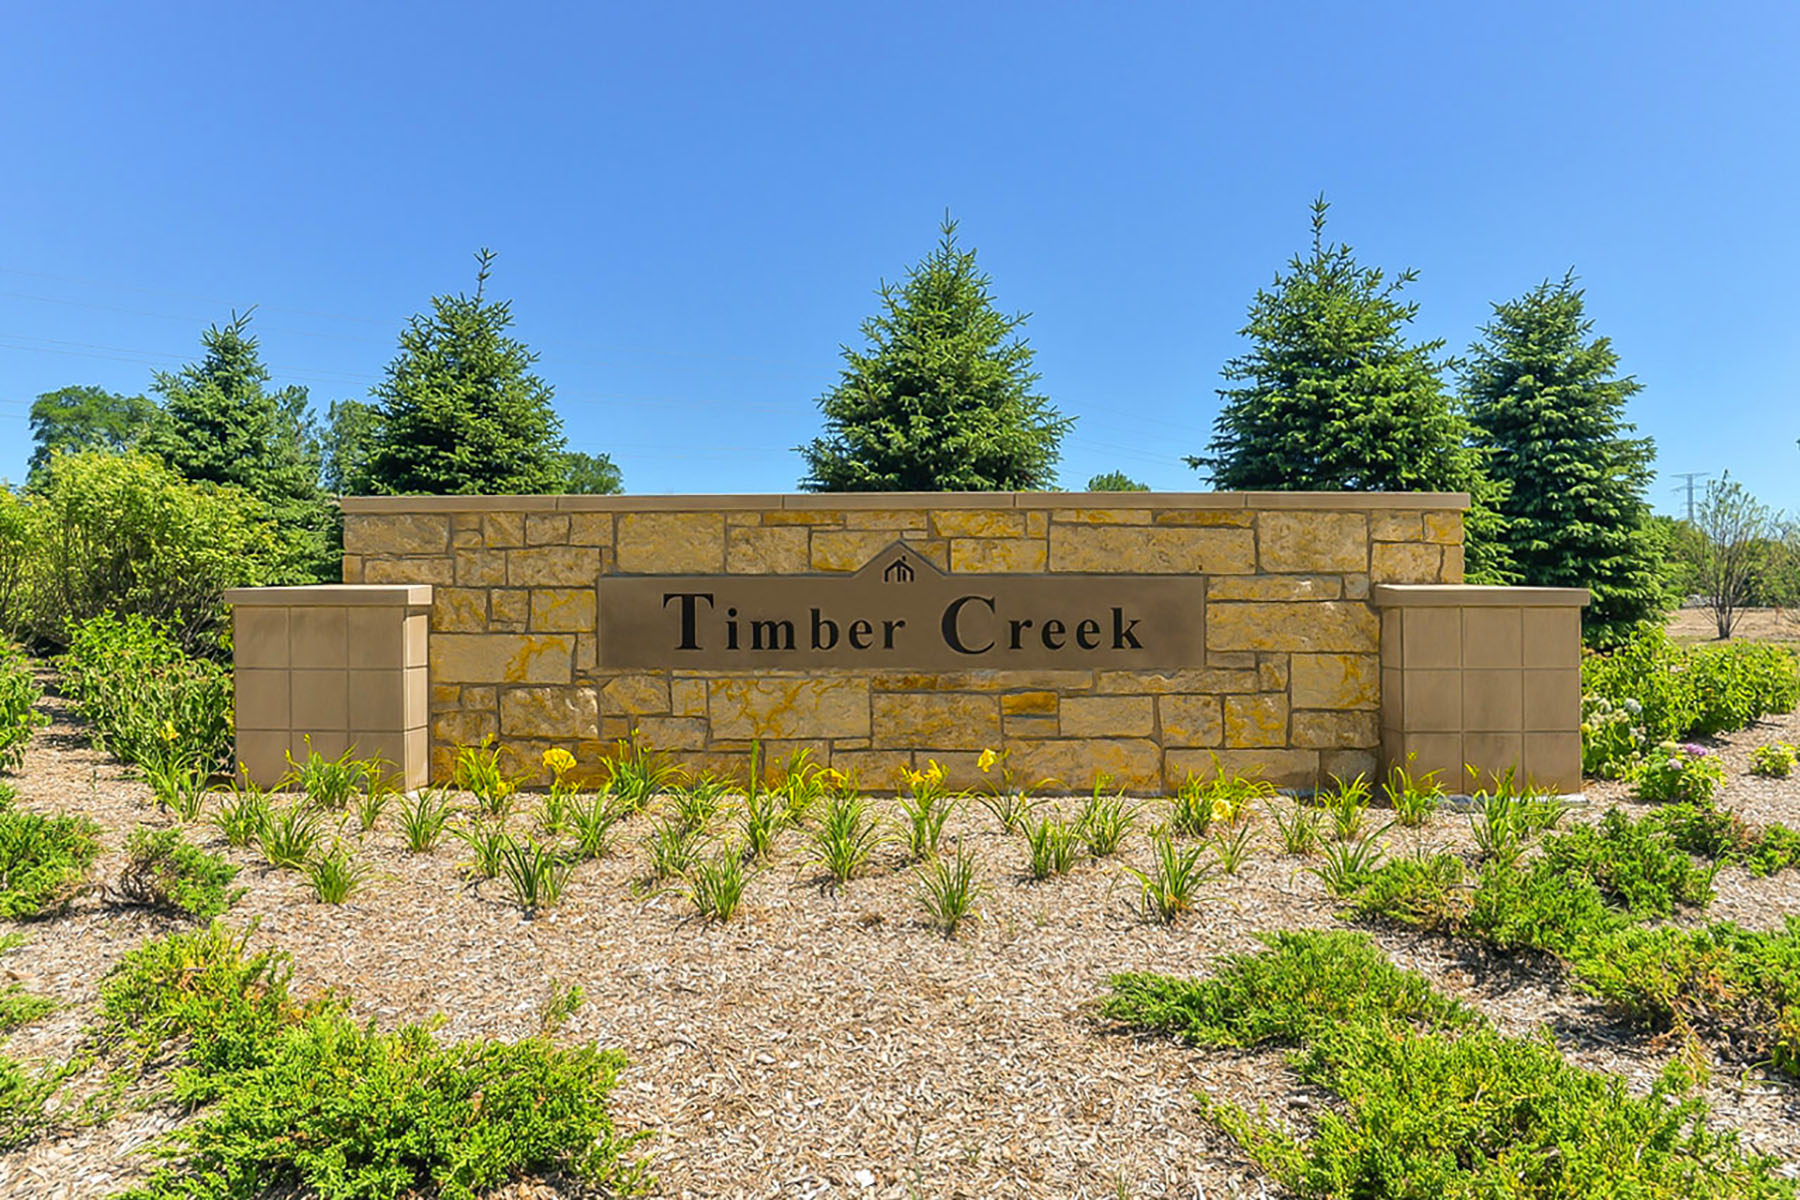 Timber Creek Entrance